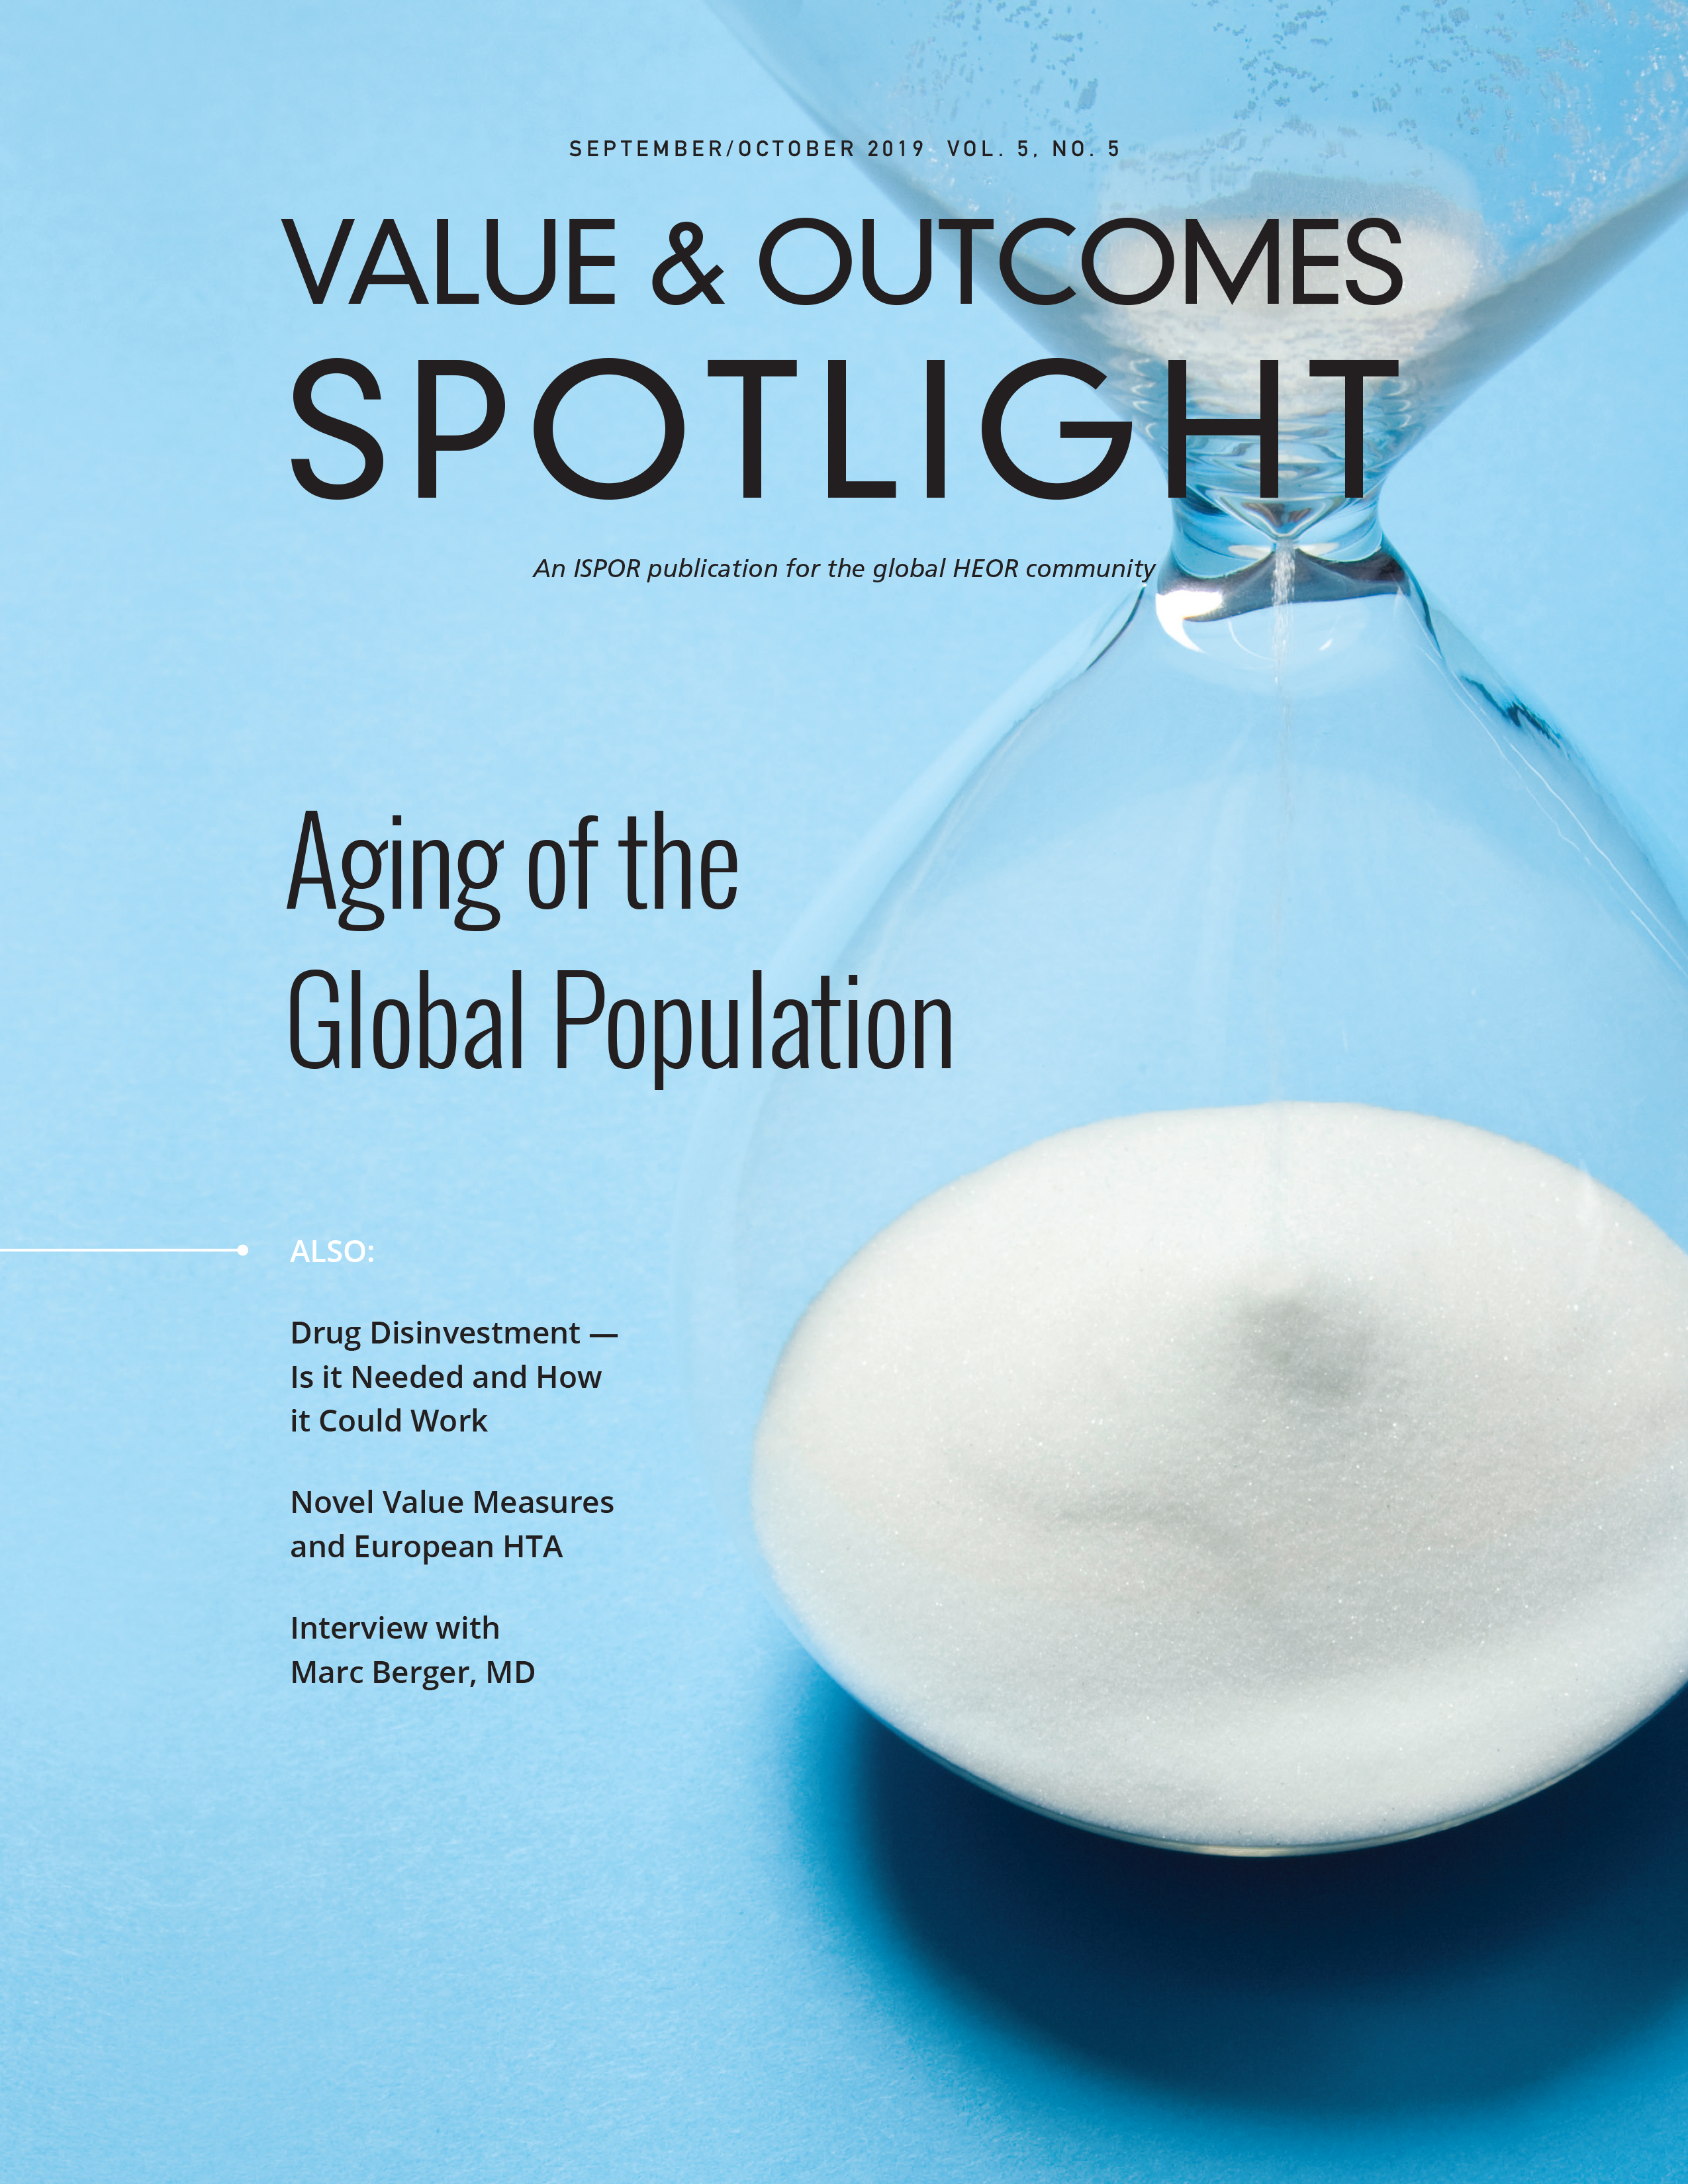 VOS Cover Sept Oct 2019 - Aging of the Global Population